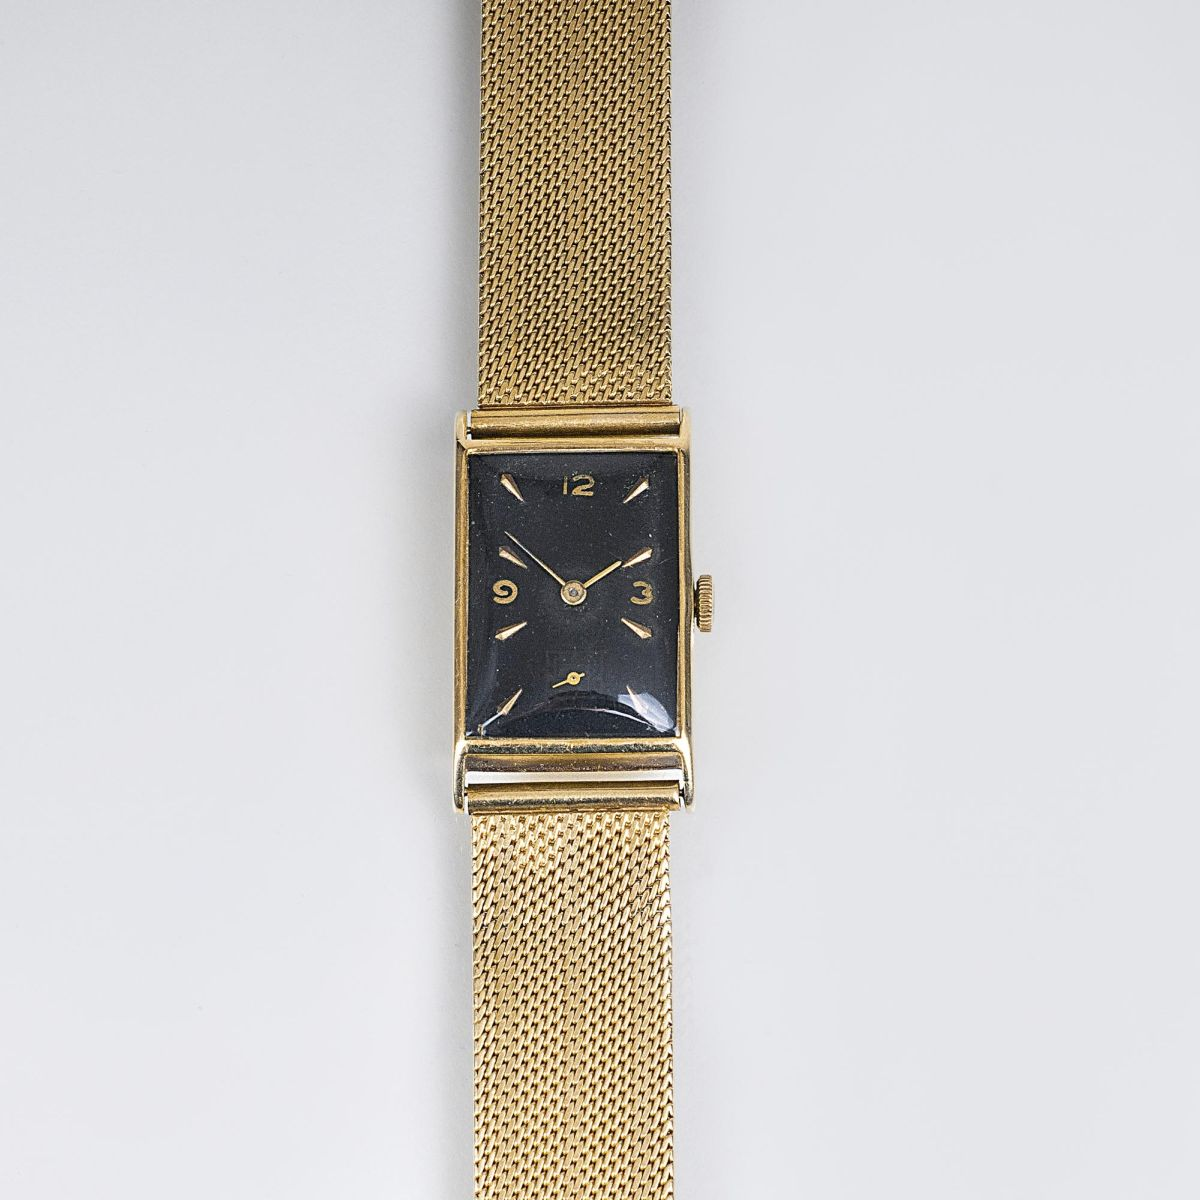 A Vintage Gentleman's Wristwatch